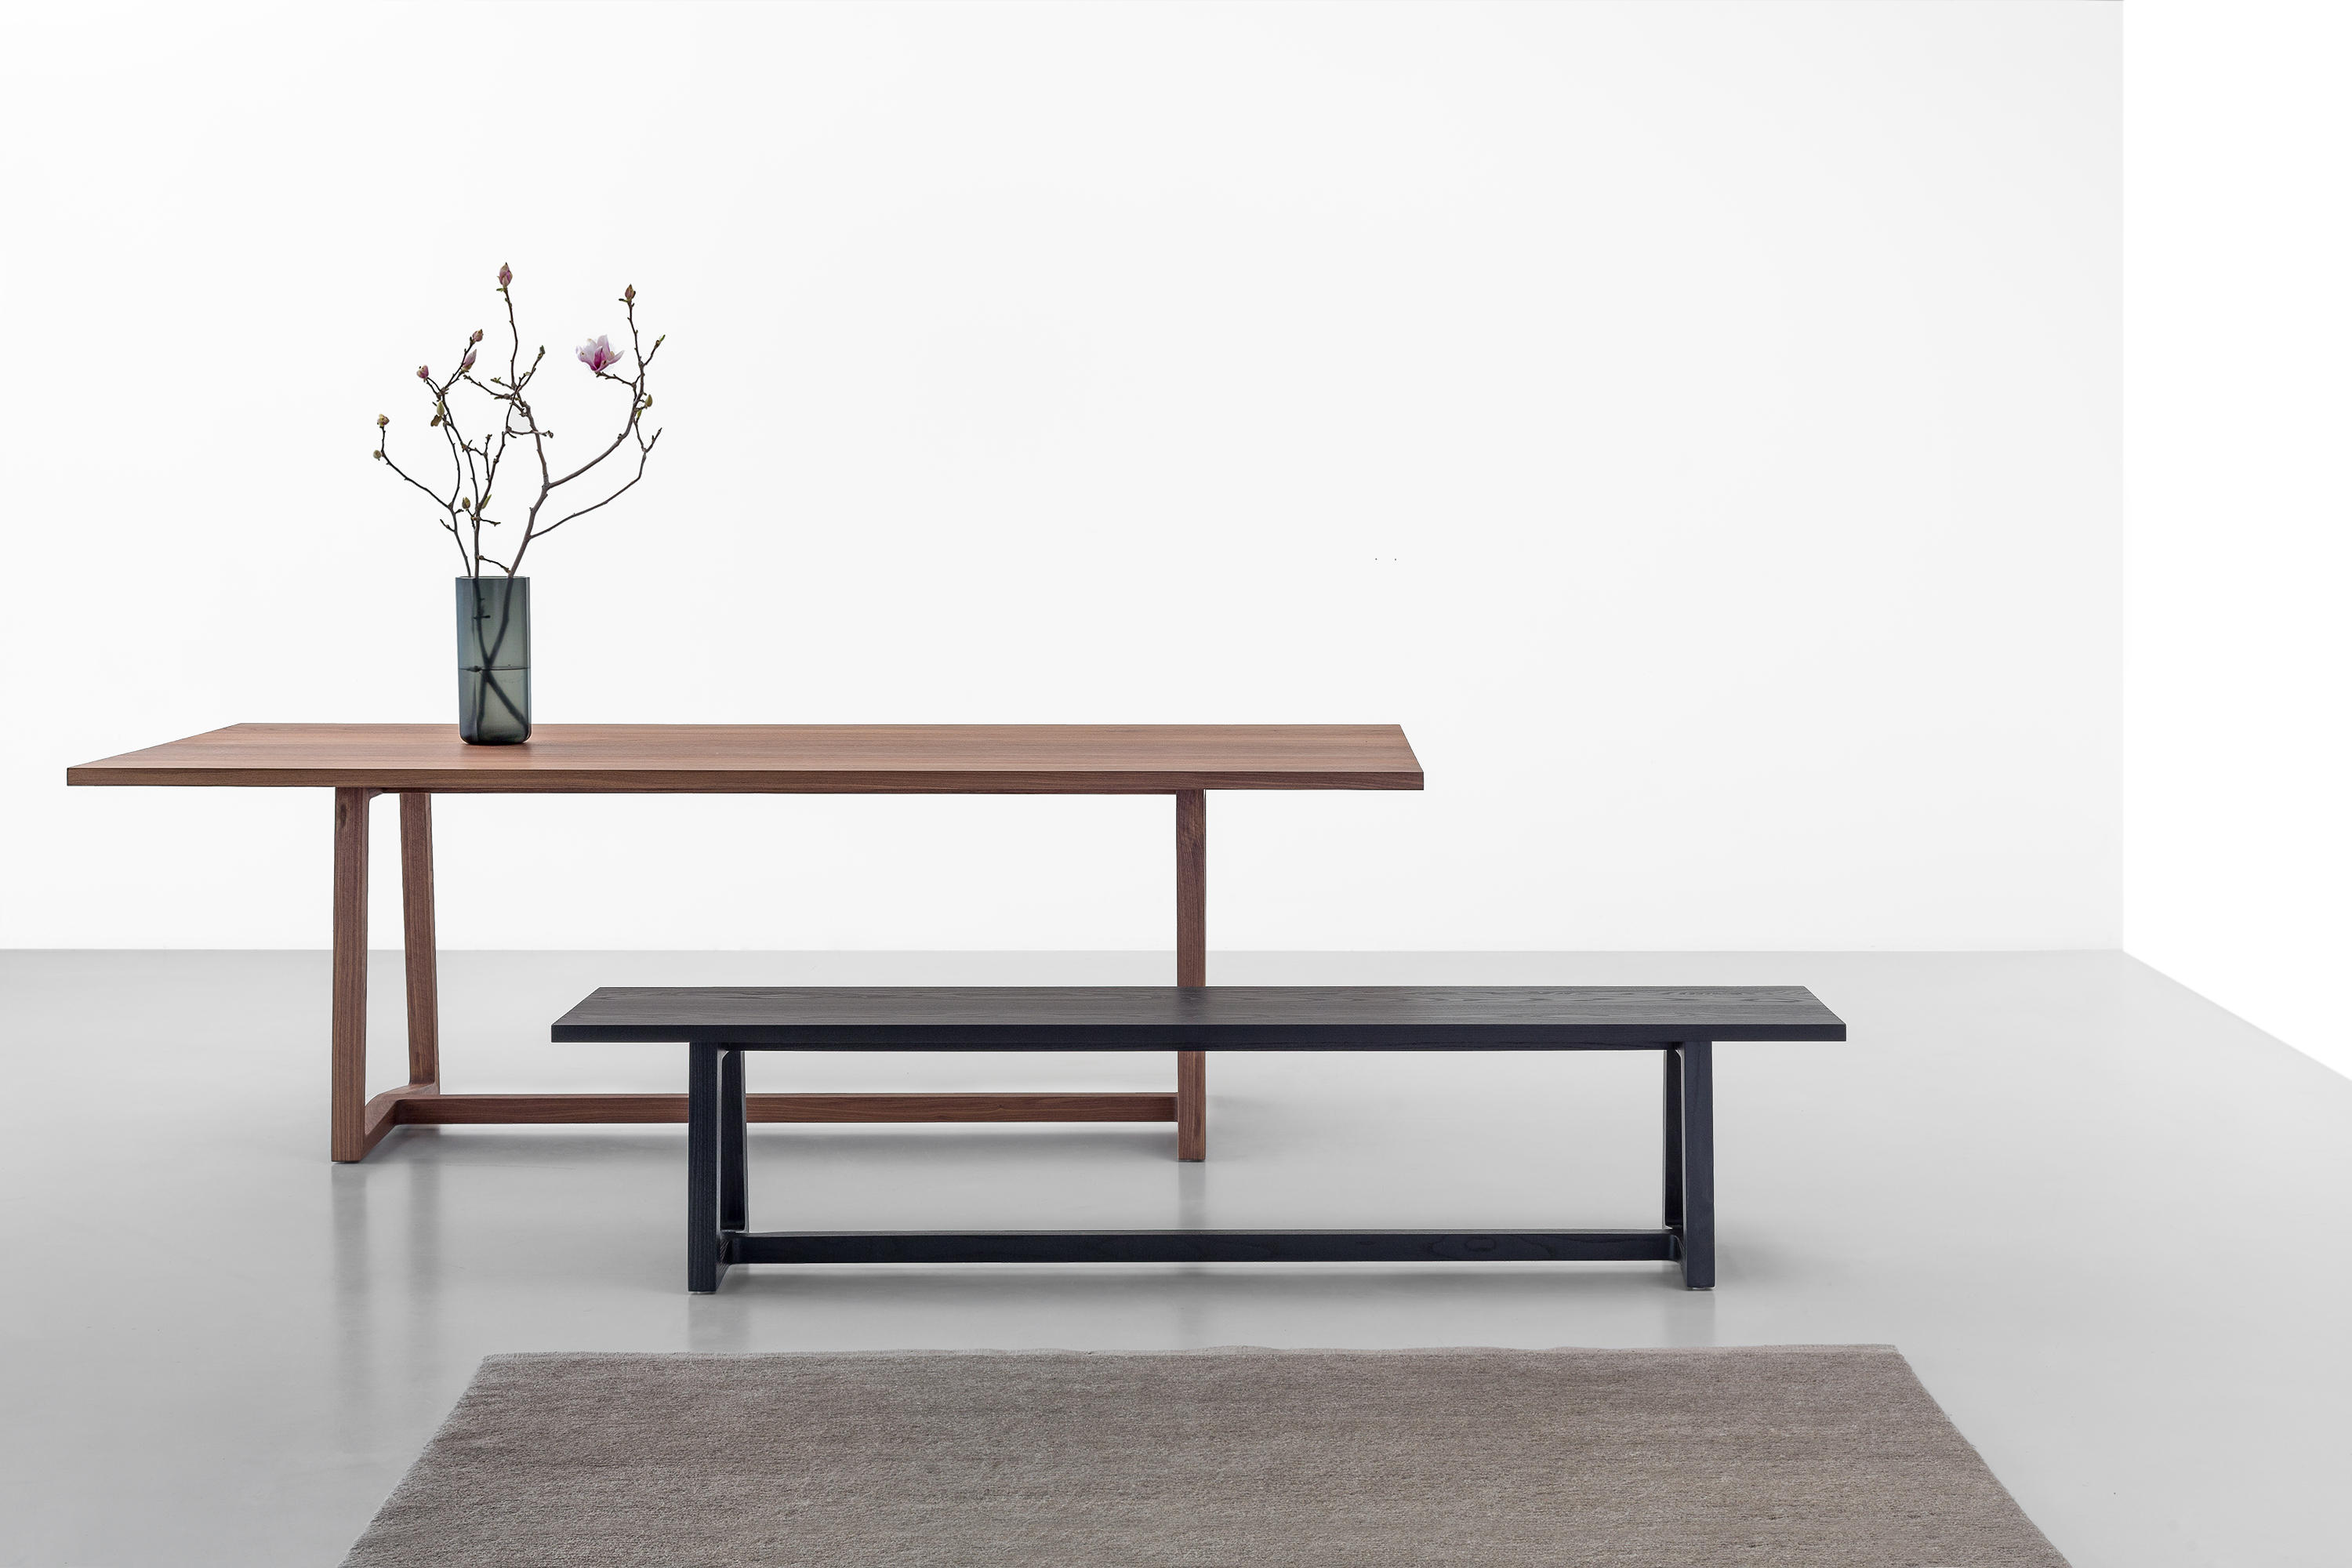 George by Zoom by Mobimex ...  sc 1 st  Architonic & GEORGE - Benches from Zoom by Mobimex | Architonic